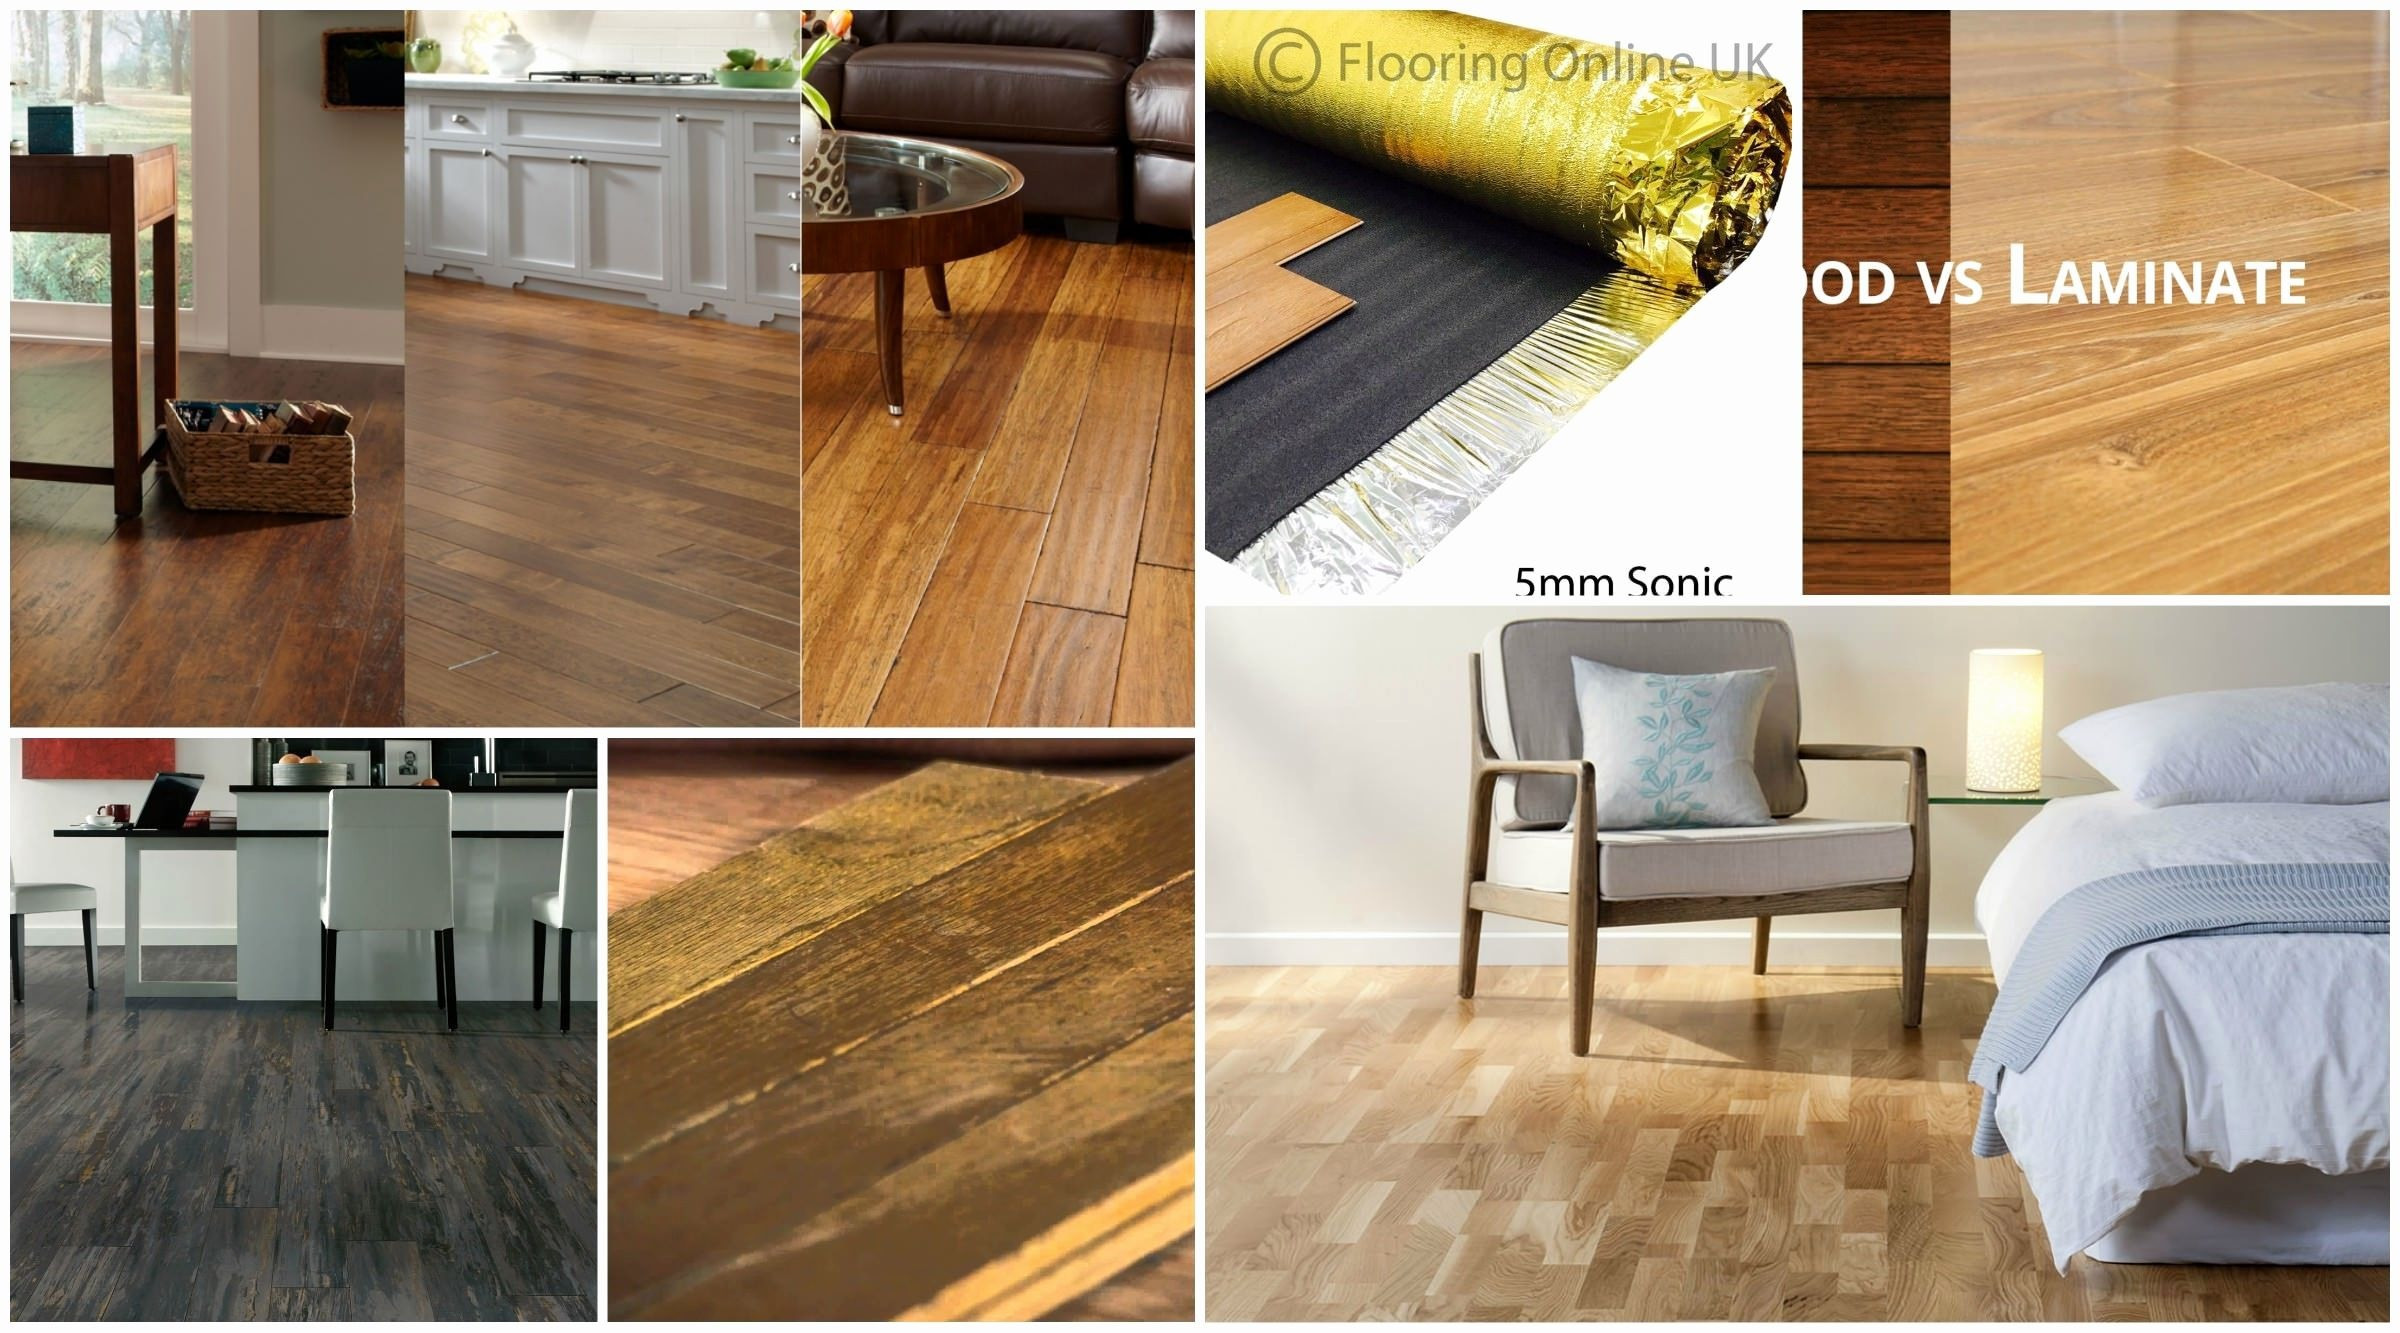 discount hardwood flooring near me of 31 unique bamboo vs hardwood flooring photograph flooring design ideas inside bamboo vs hardwood flooring fresh engineered bamboo flooring problems images of 31 unique bamboo vs hardwood